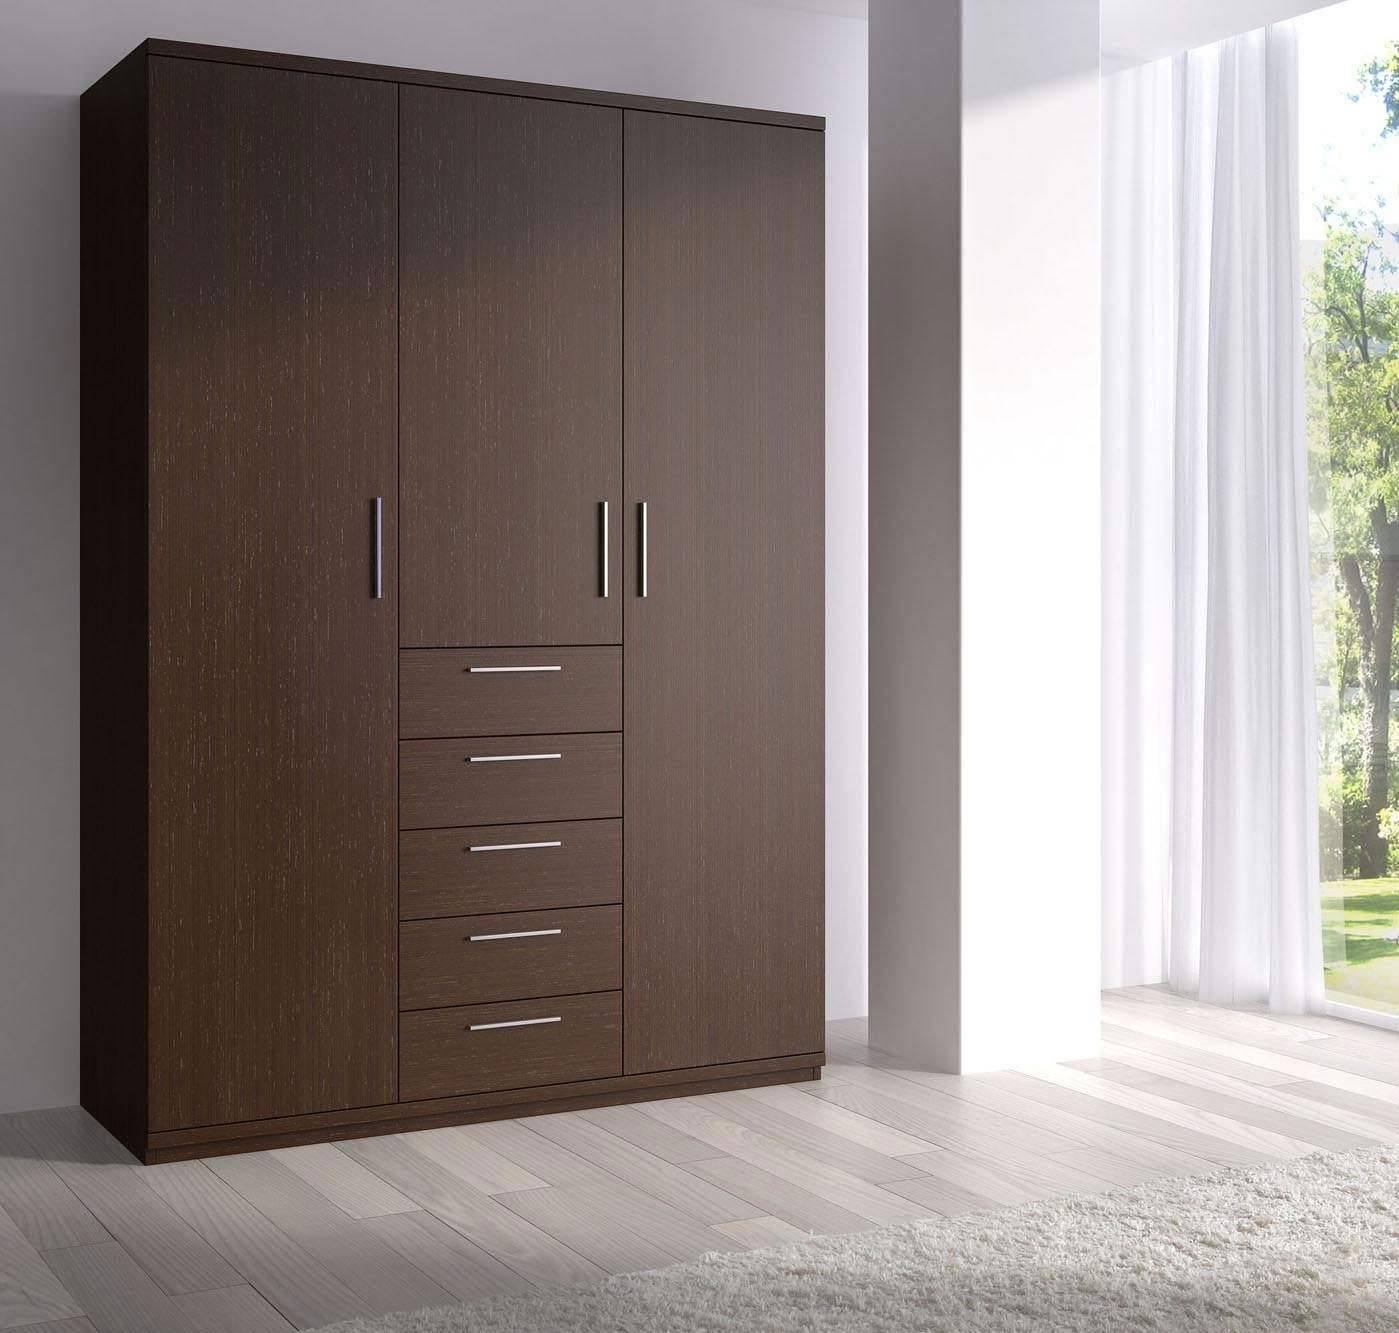 Bedroom Classy Wooden Closet Wardrobe Ideas With Modern Design Regarding Dark Wardrobes (View 8 of 15)